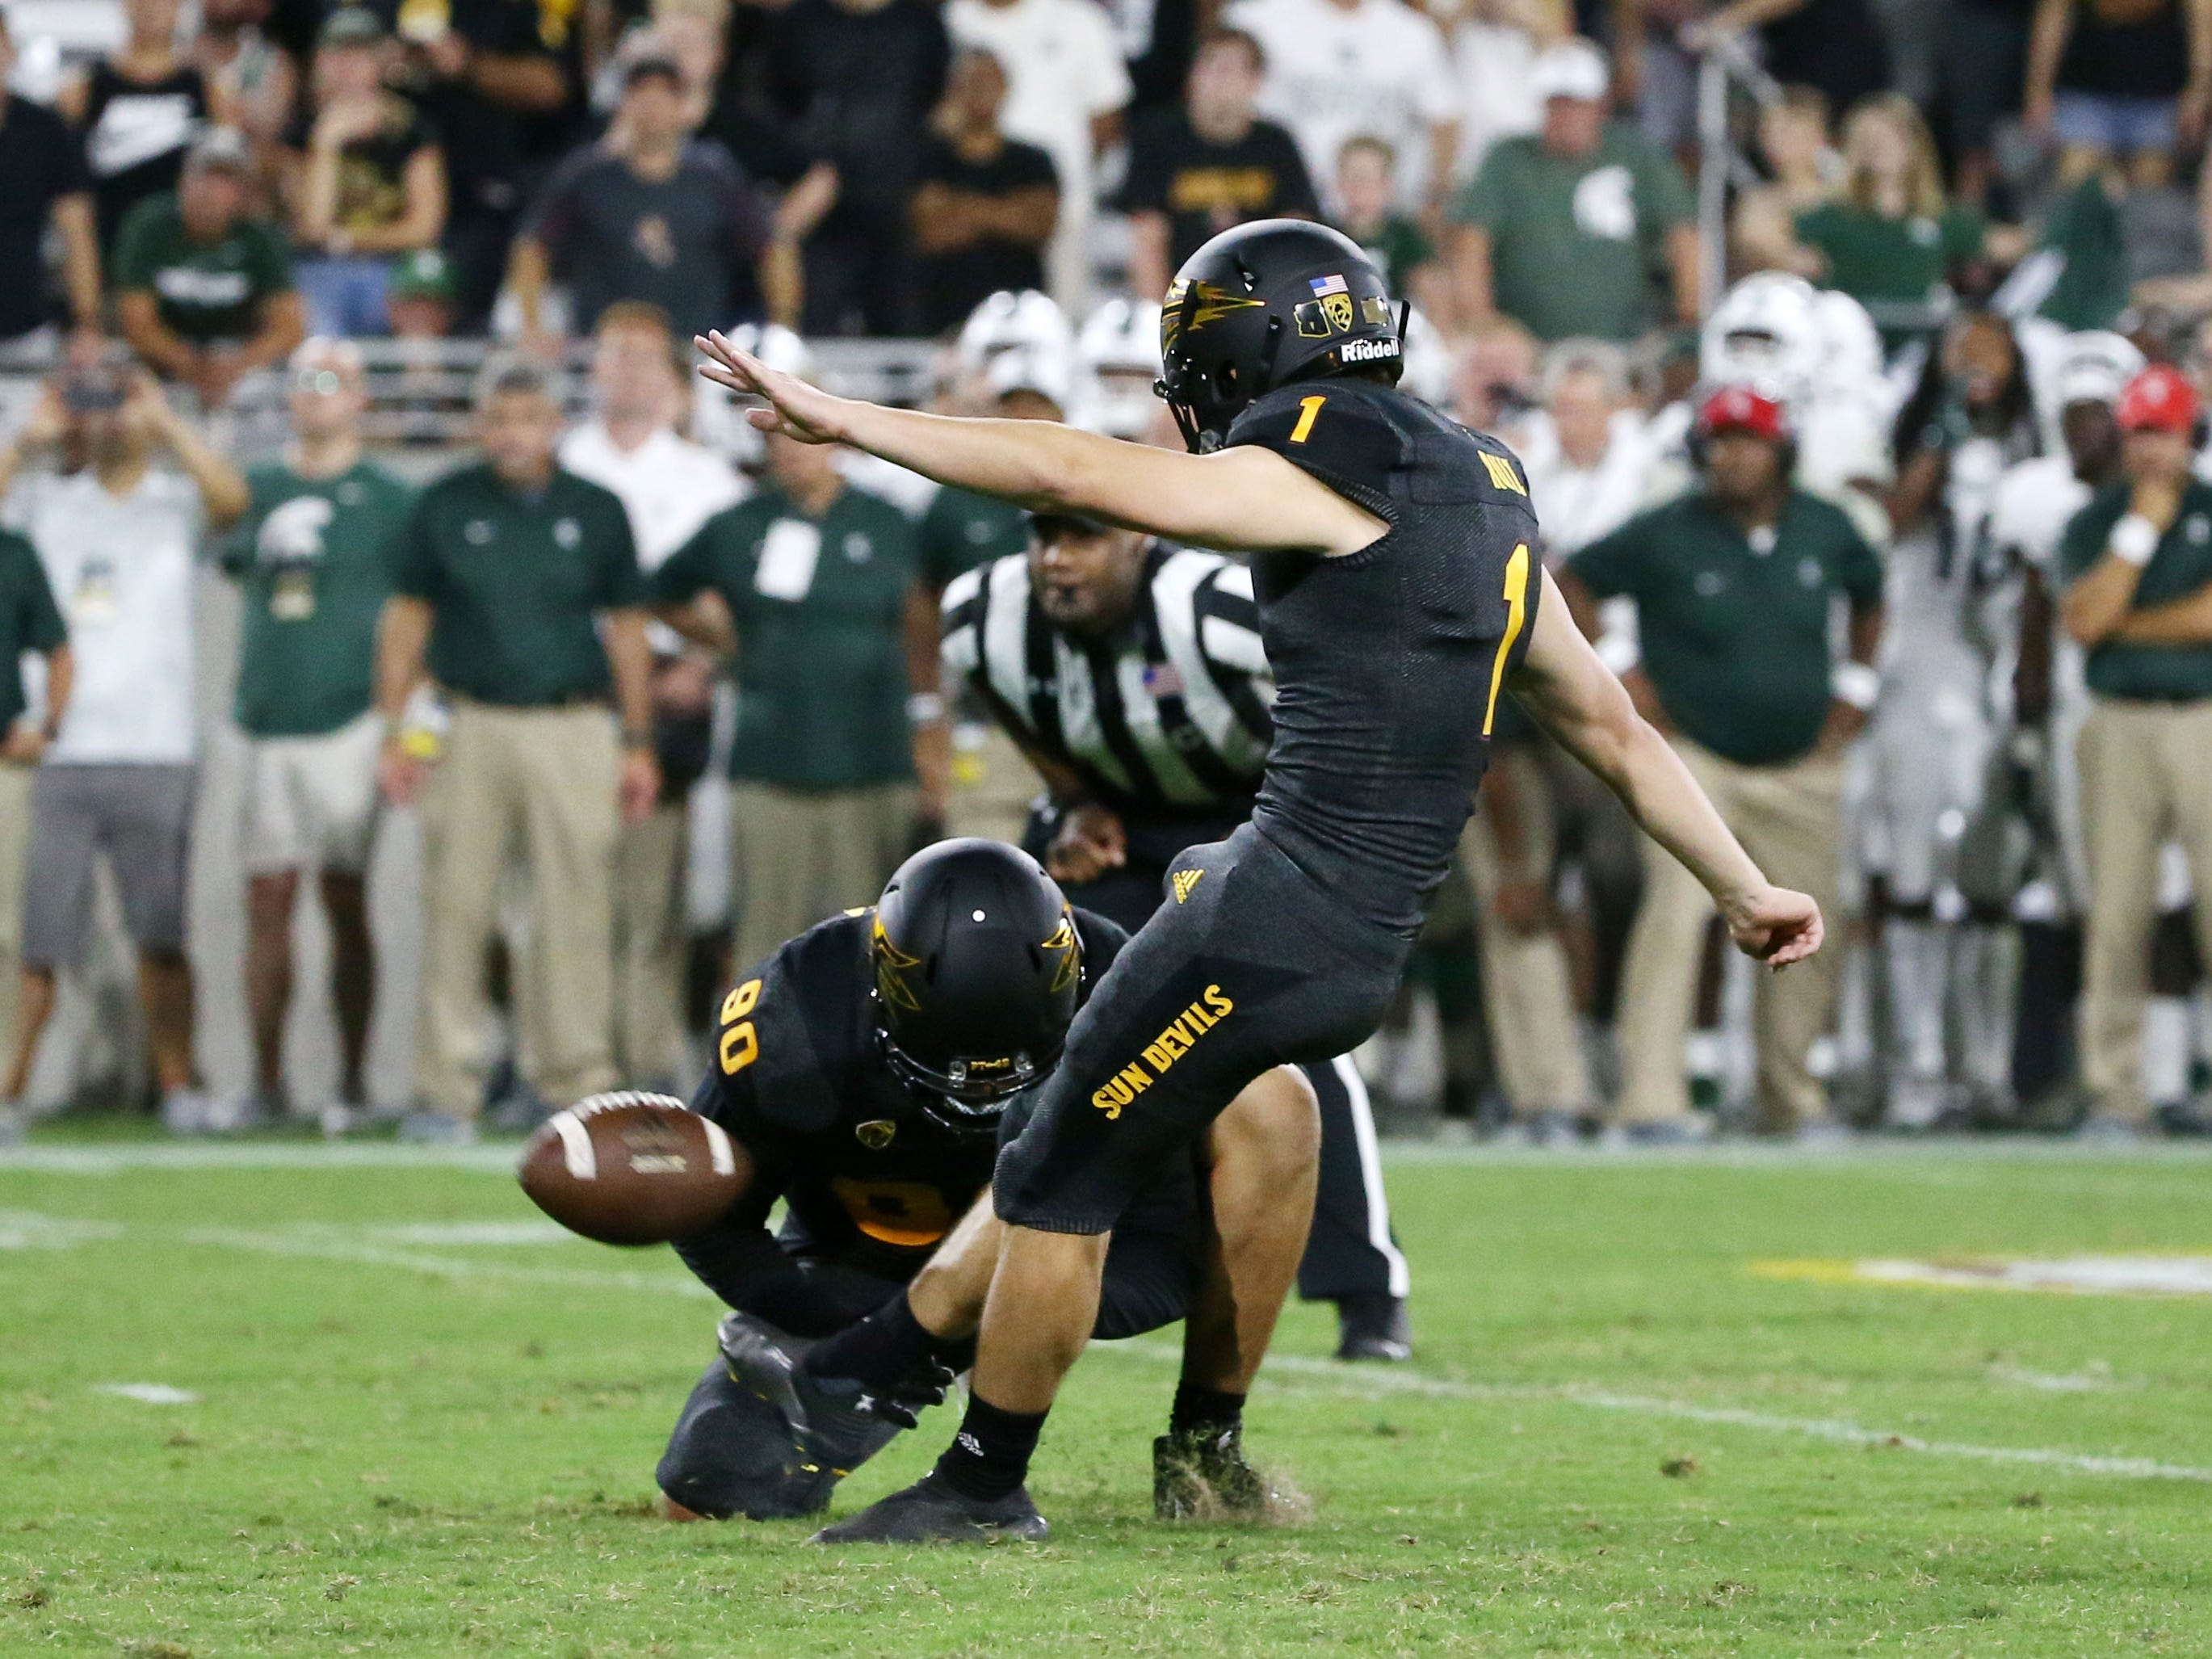 Arizona State place kicker Brandon Ruiz kicks the winning field goal to defeat Michigan State 16-13 on Sep. 8, 2018, at Sun Devil Stadium.